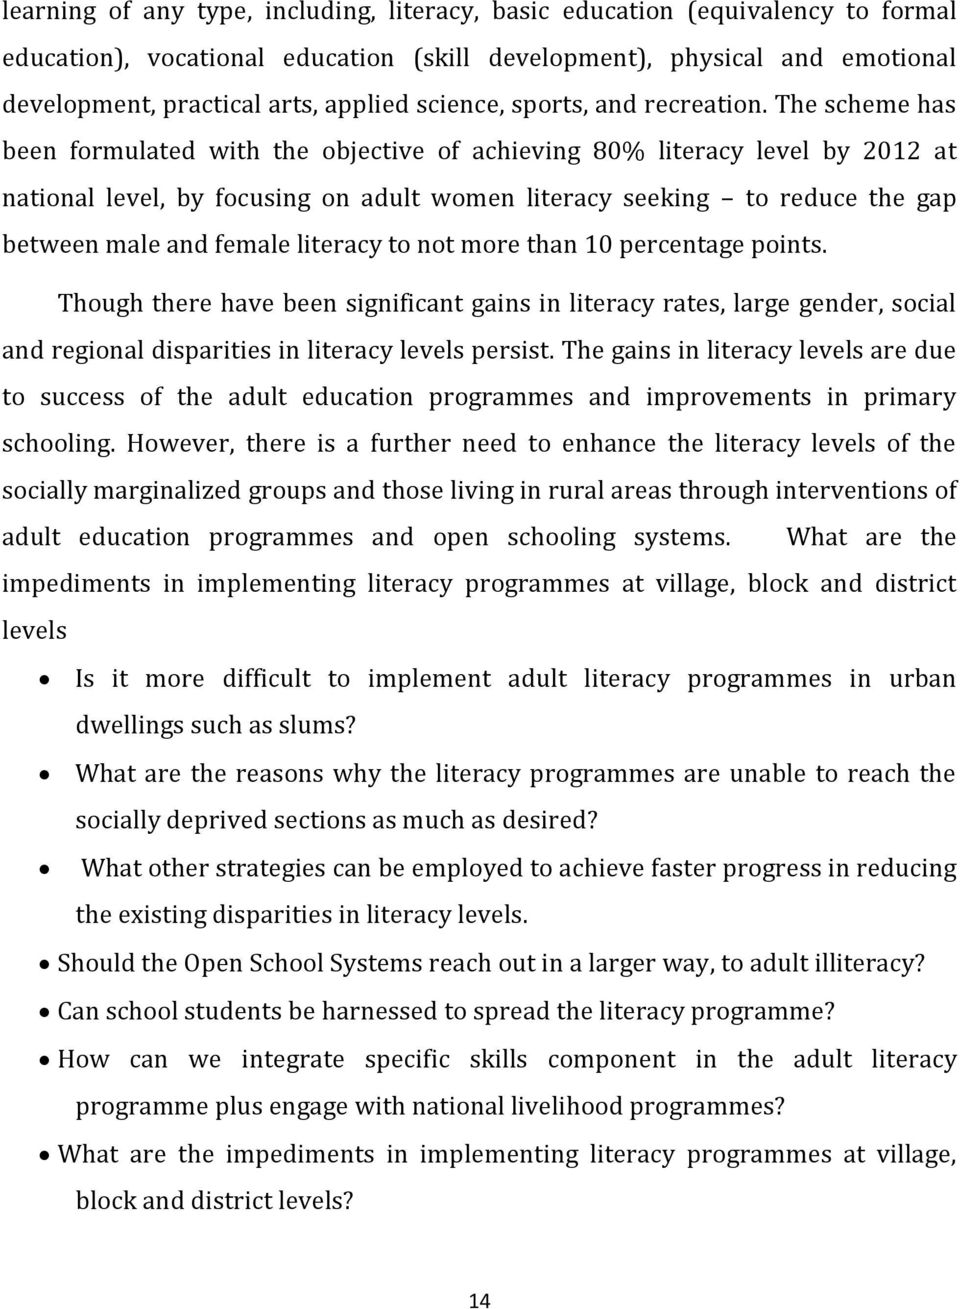 The scheme has been formulated with the objective of achieving 80% literacy level by 2012 at national level, by focusing on adult women literacy seeking to reduce the gap between male and female